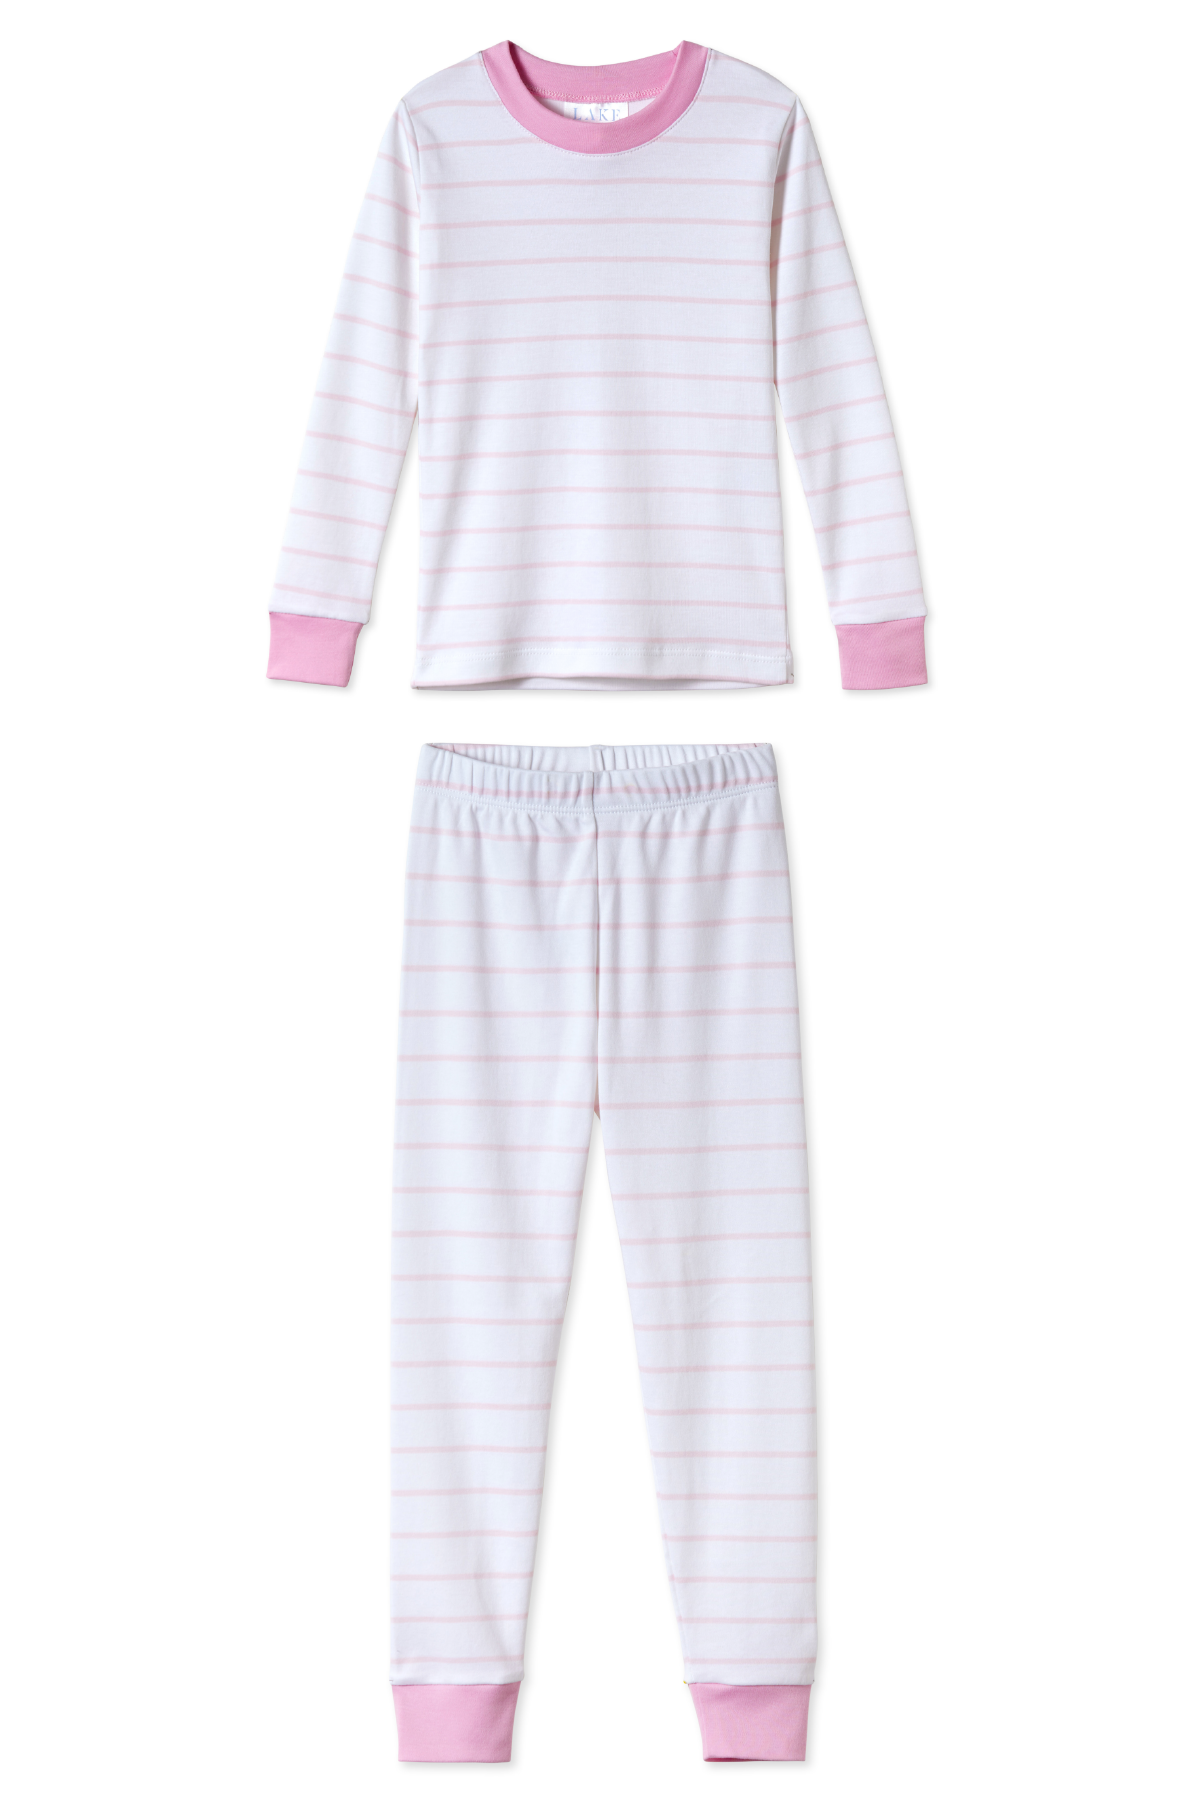 Kids Long-Long Set in Peony